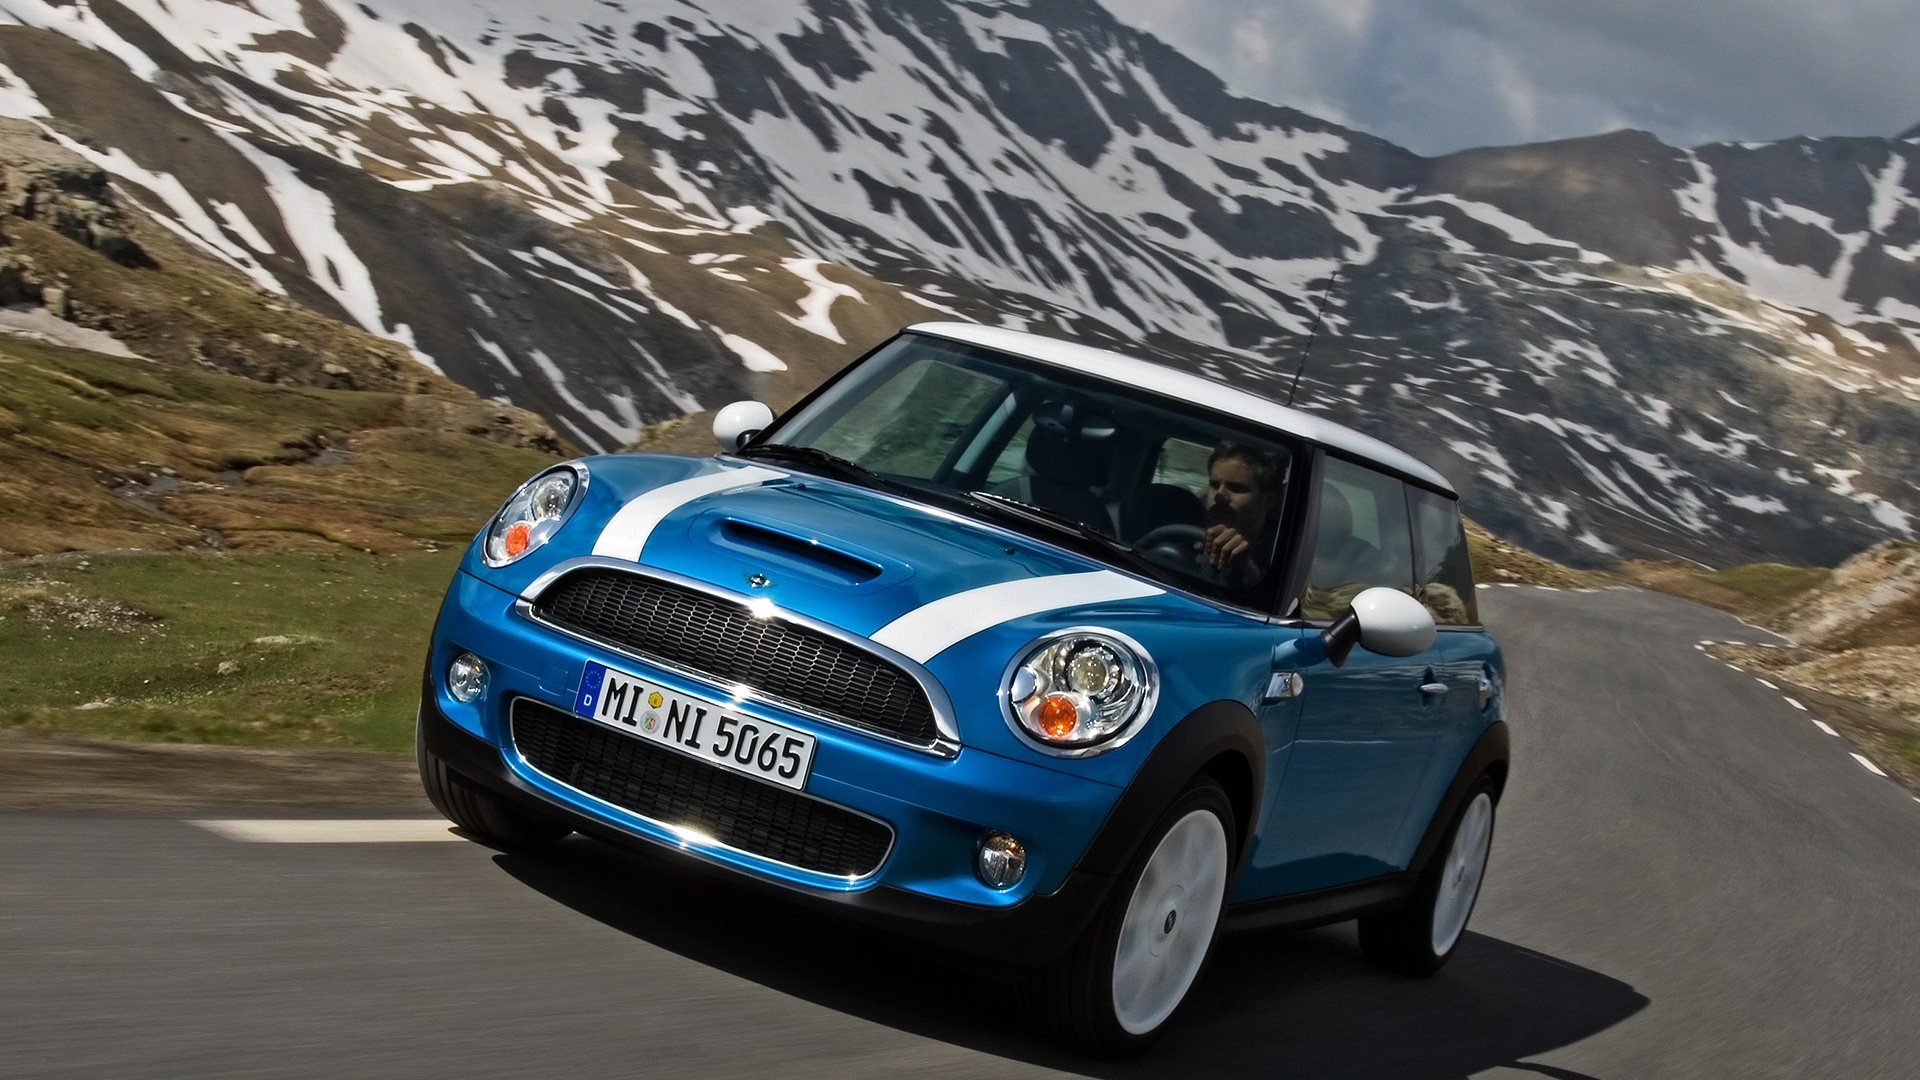 Hd wallpaper for mac - 1920x1080 Mini Cooper S Desktop Pc And Mac Wallpaper